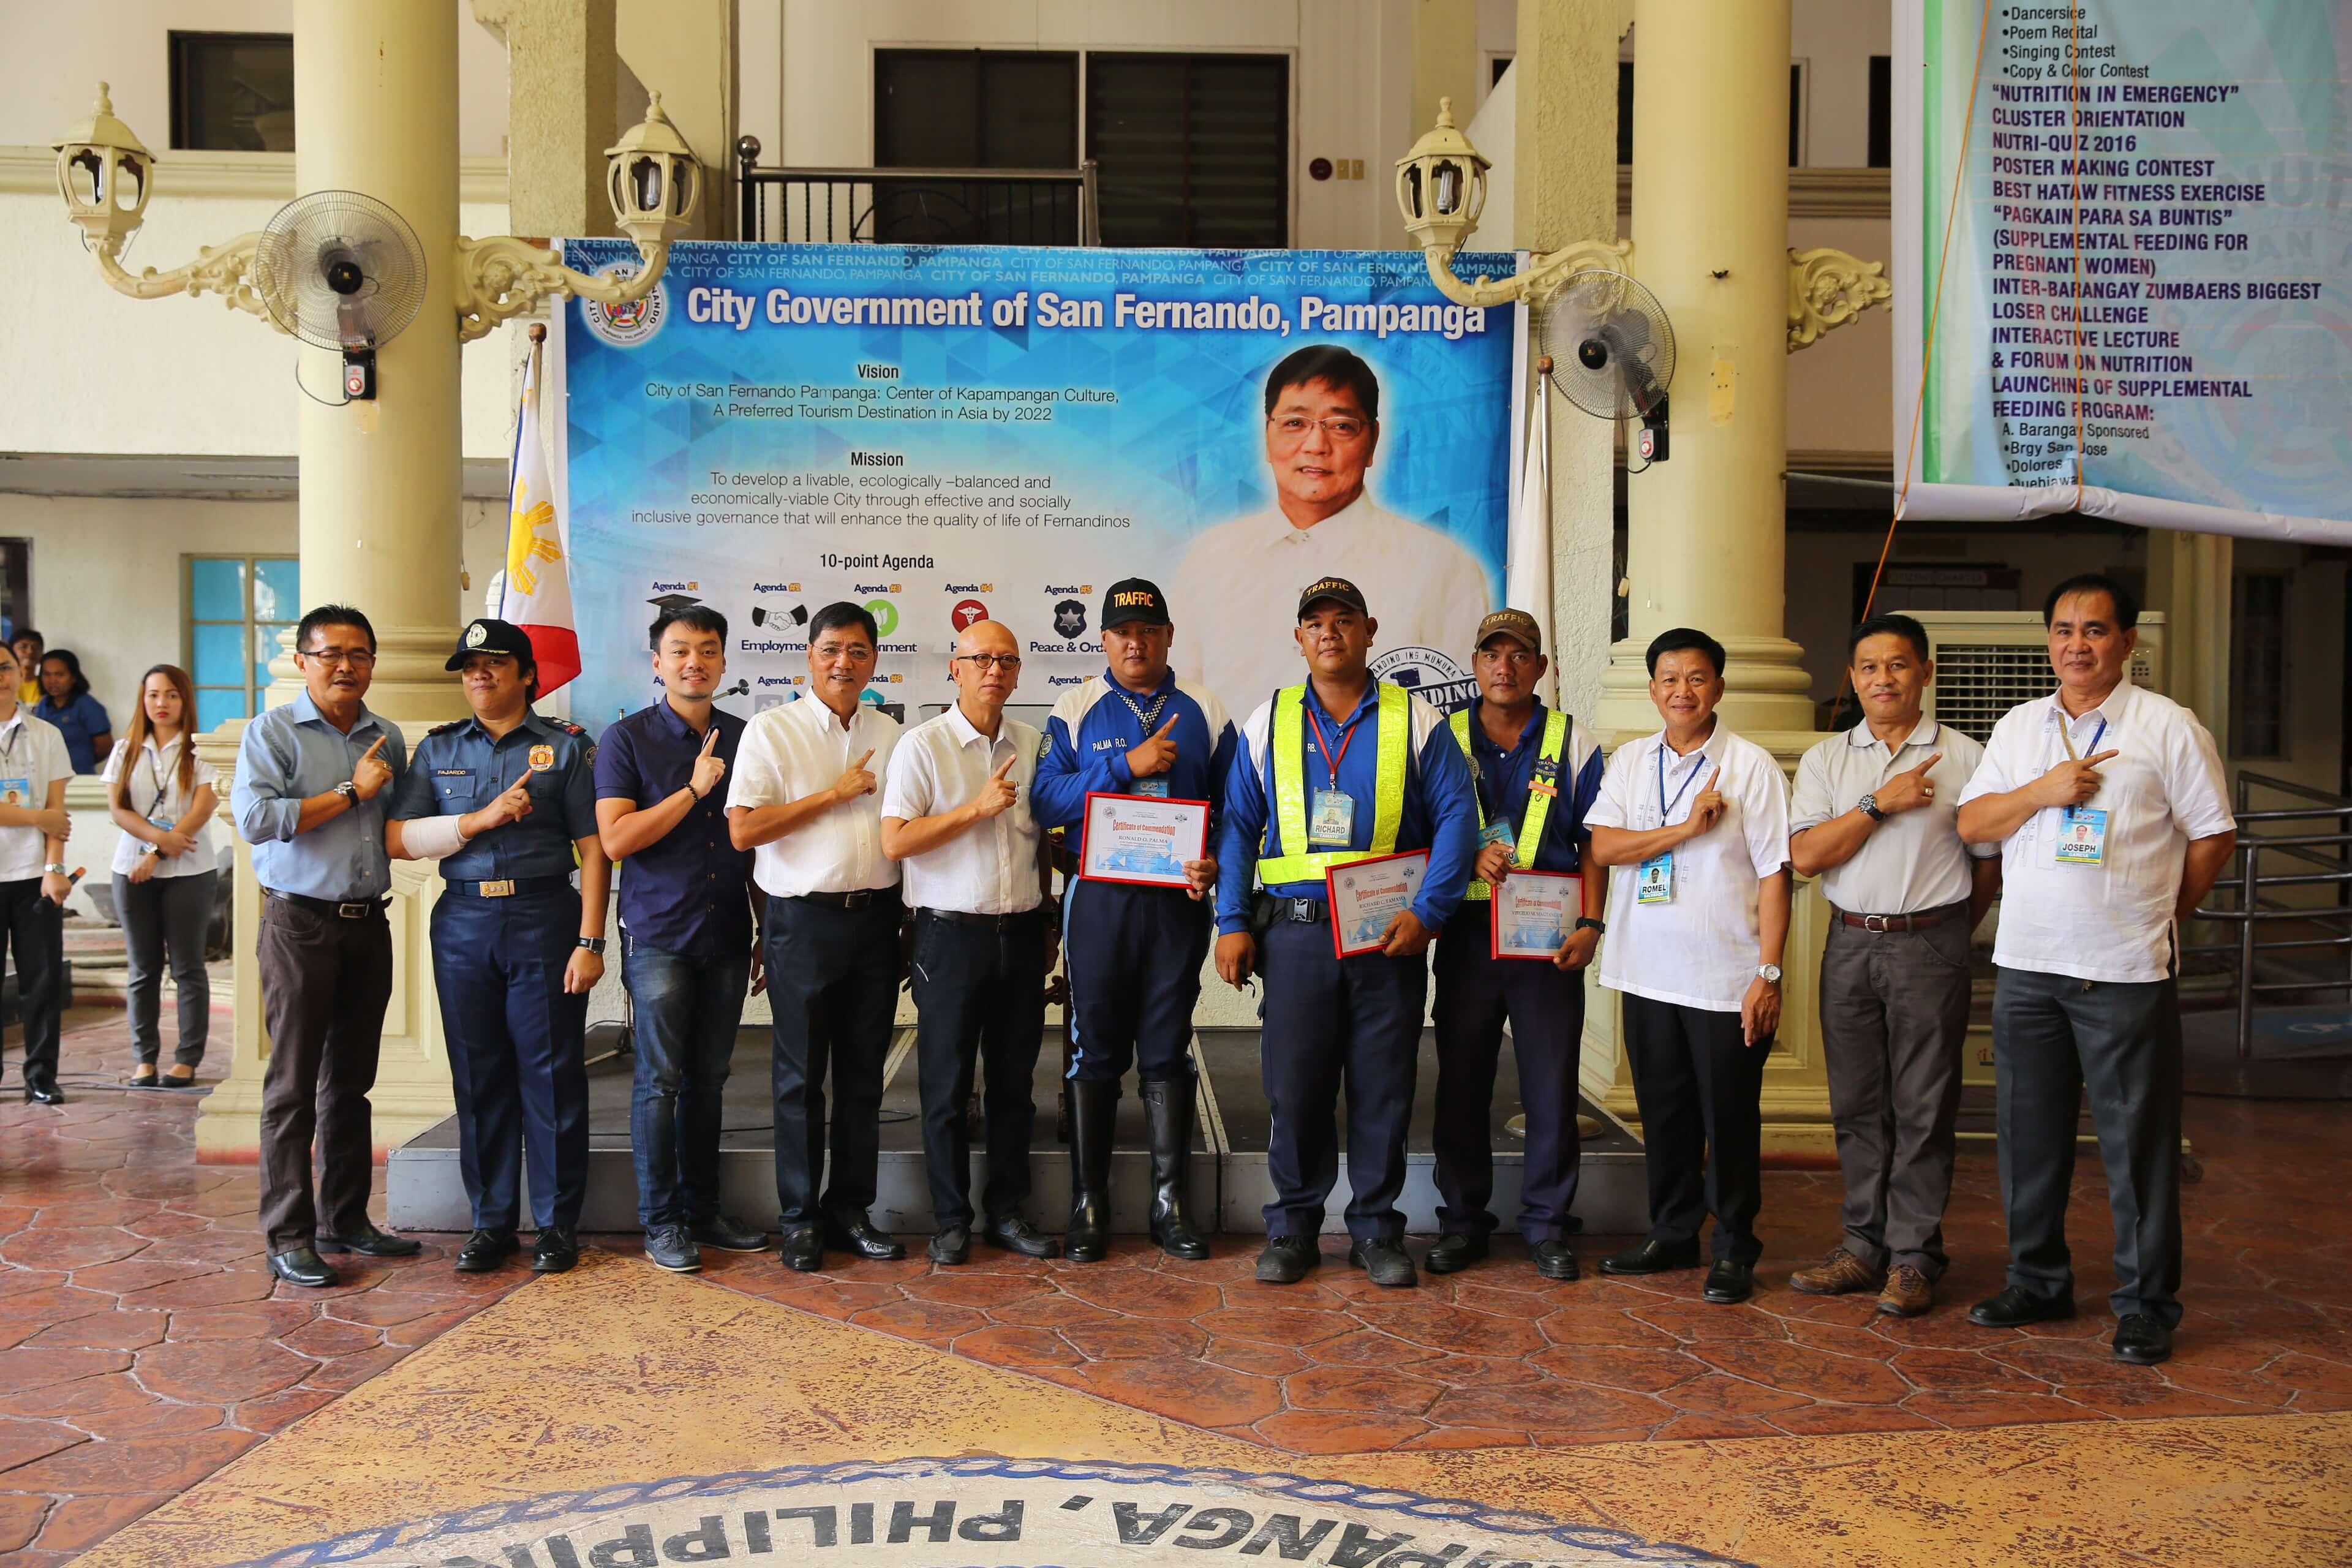 CSF Lauds Traffic Enforcers For Public Safety Efforts